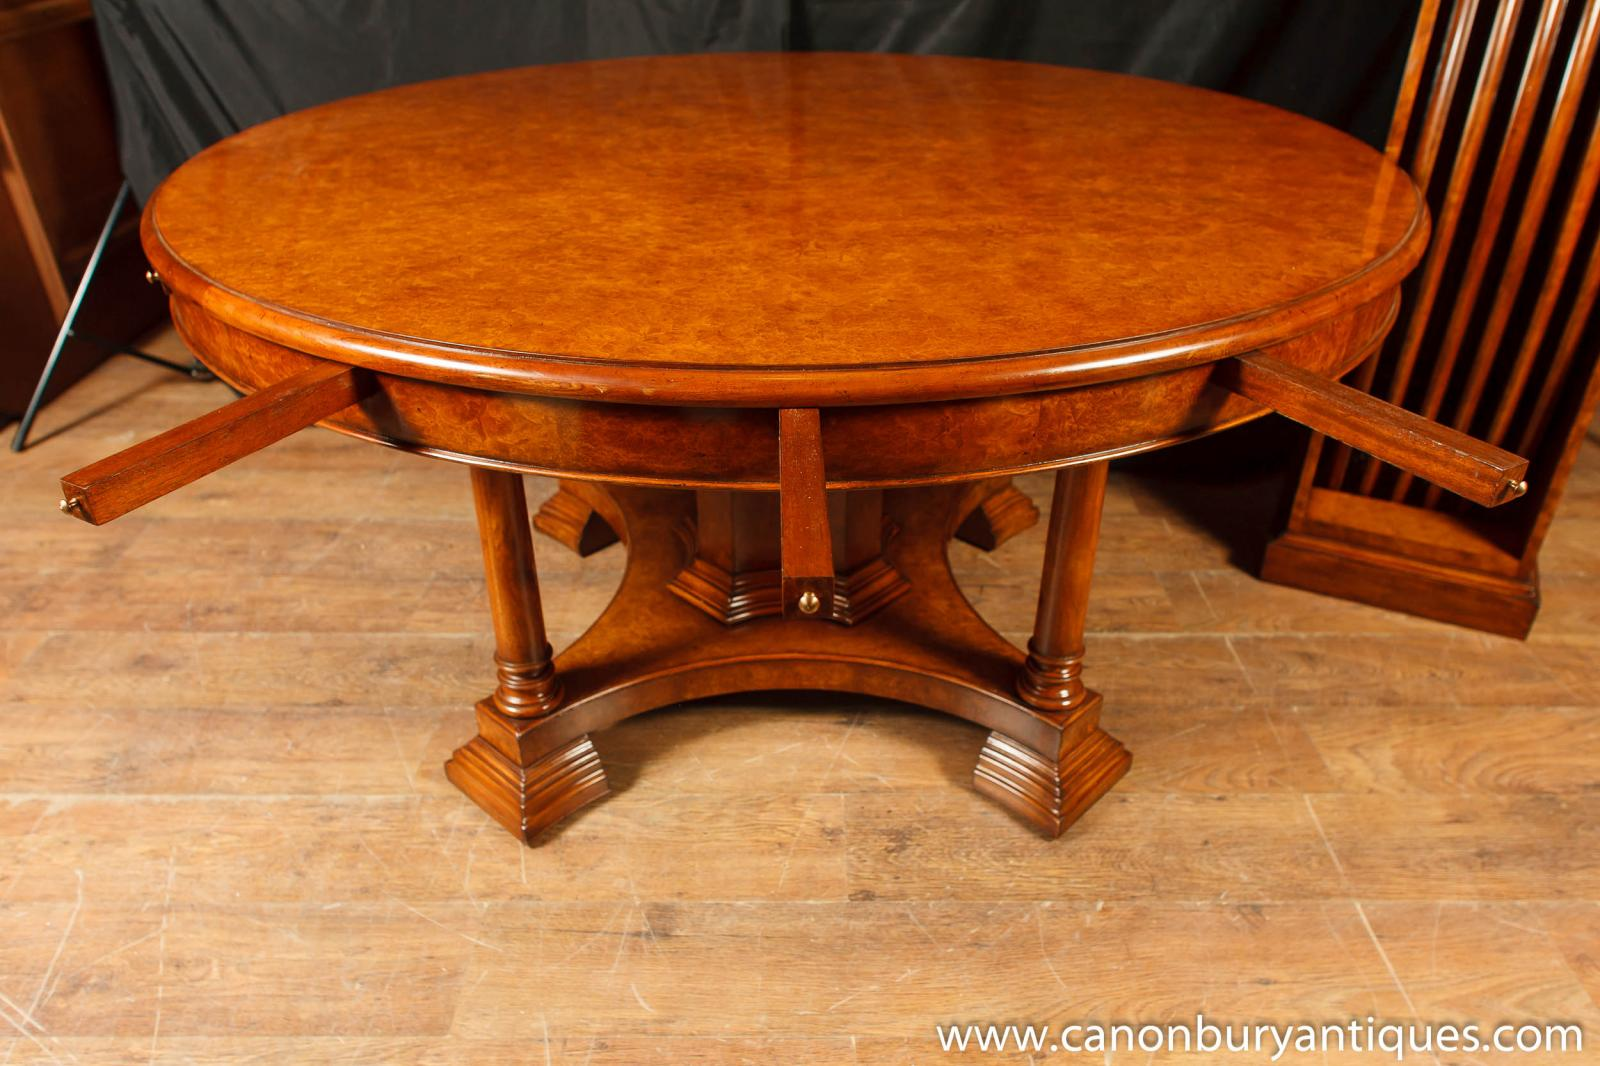 Walnut regency jupe table extending round dining tables ebay for Round extending dining table